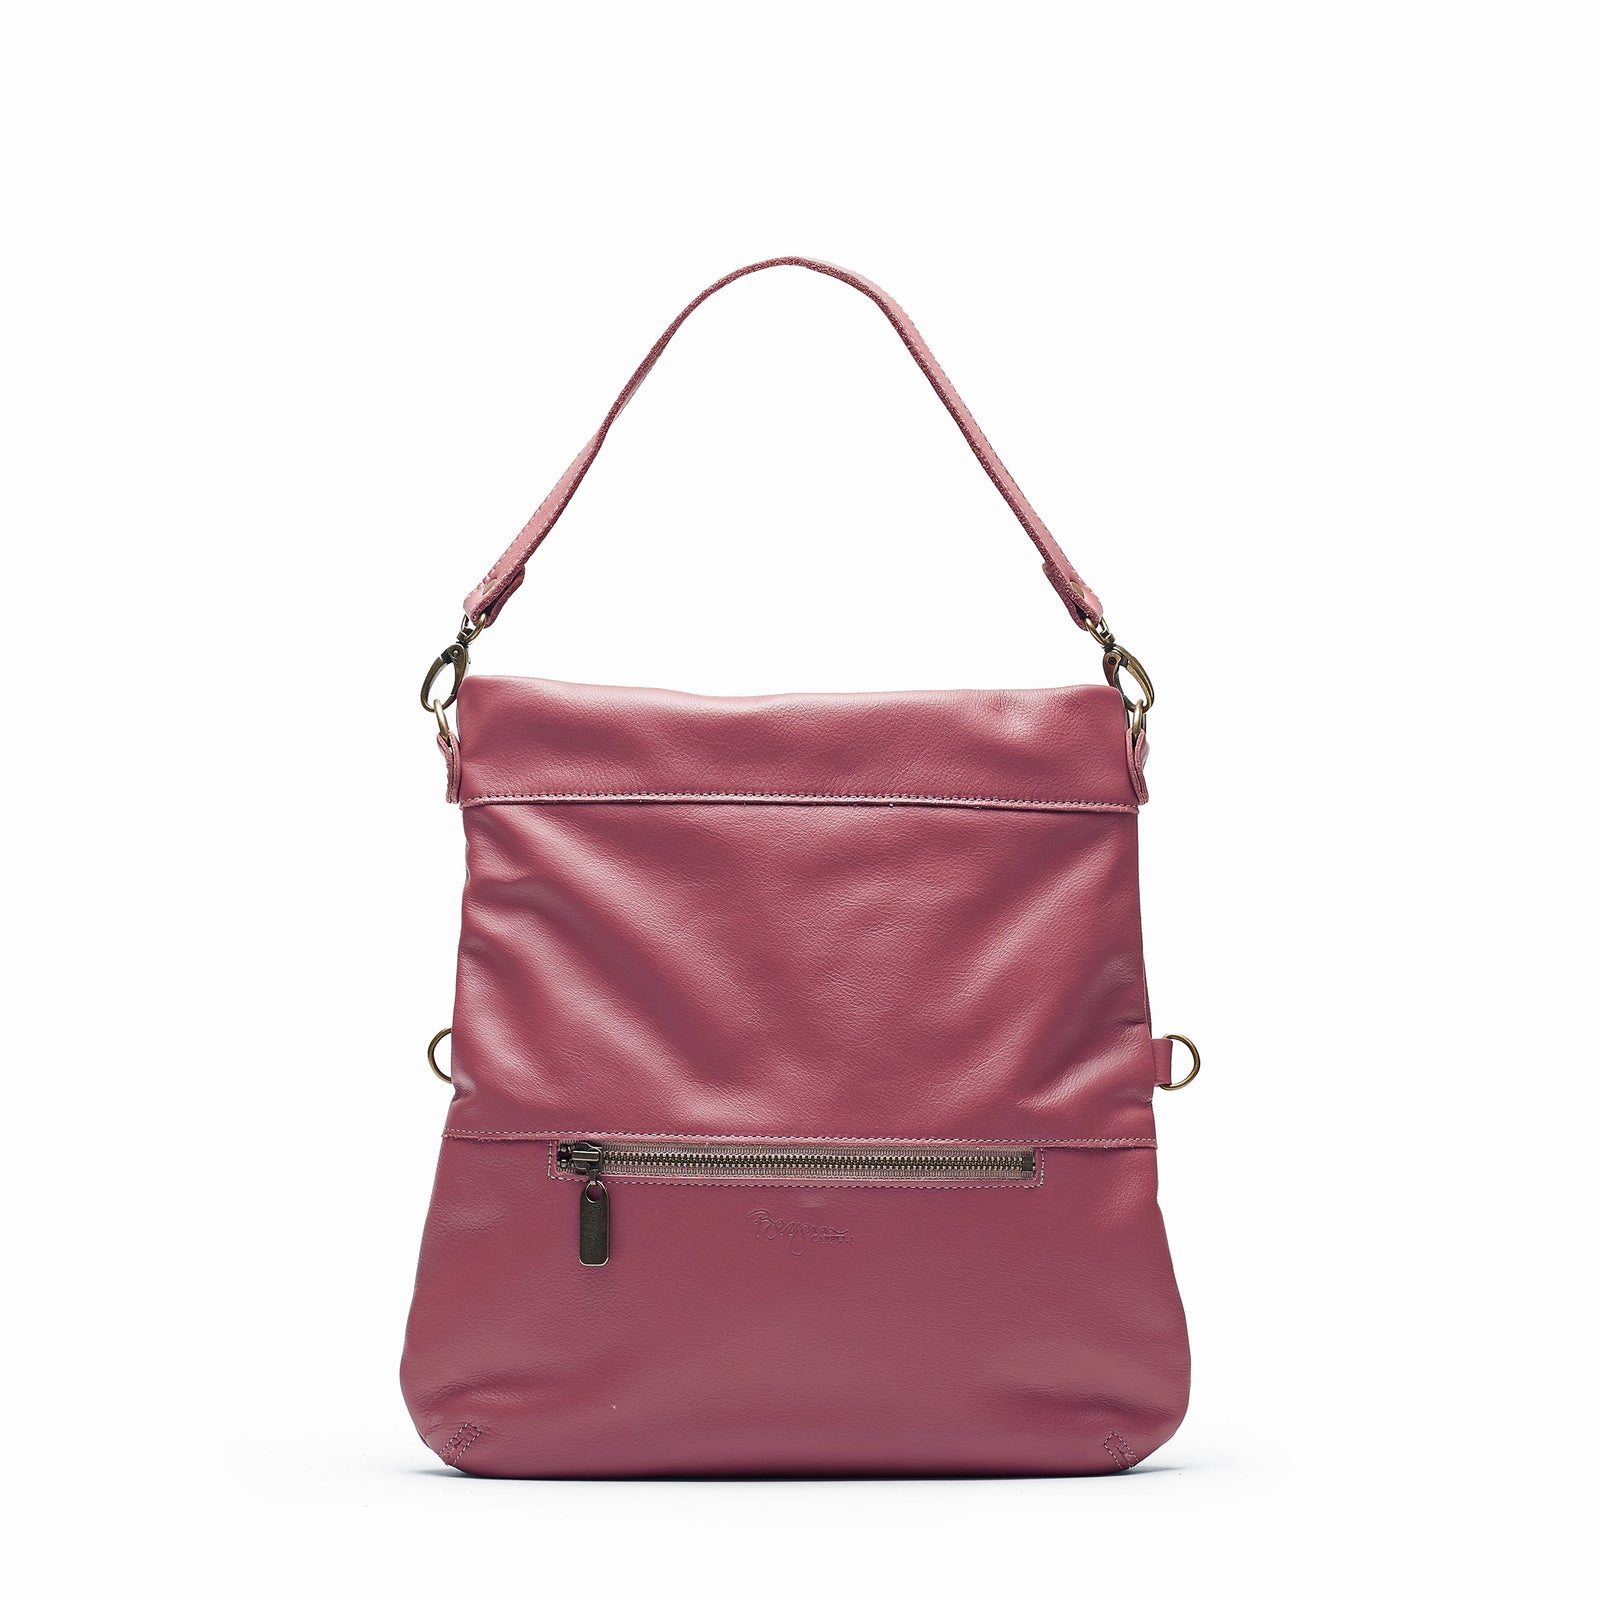 Mini-Lauren Crossbody - Rosewood - Brynn Capella, Medium Crossbody